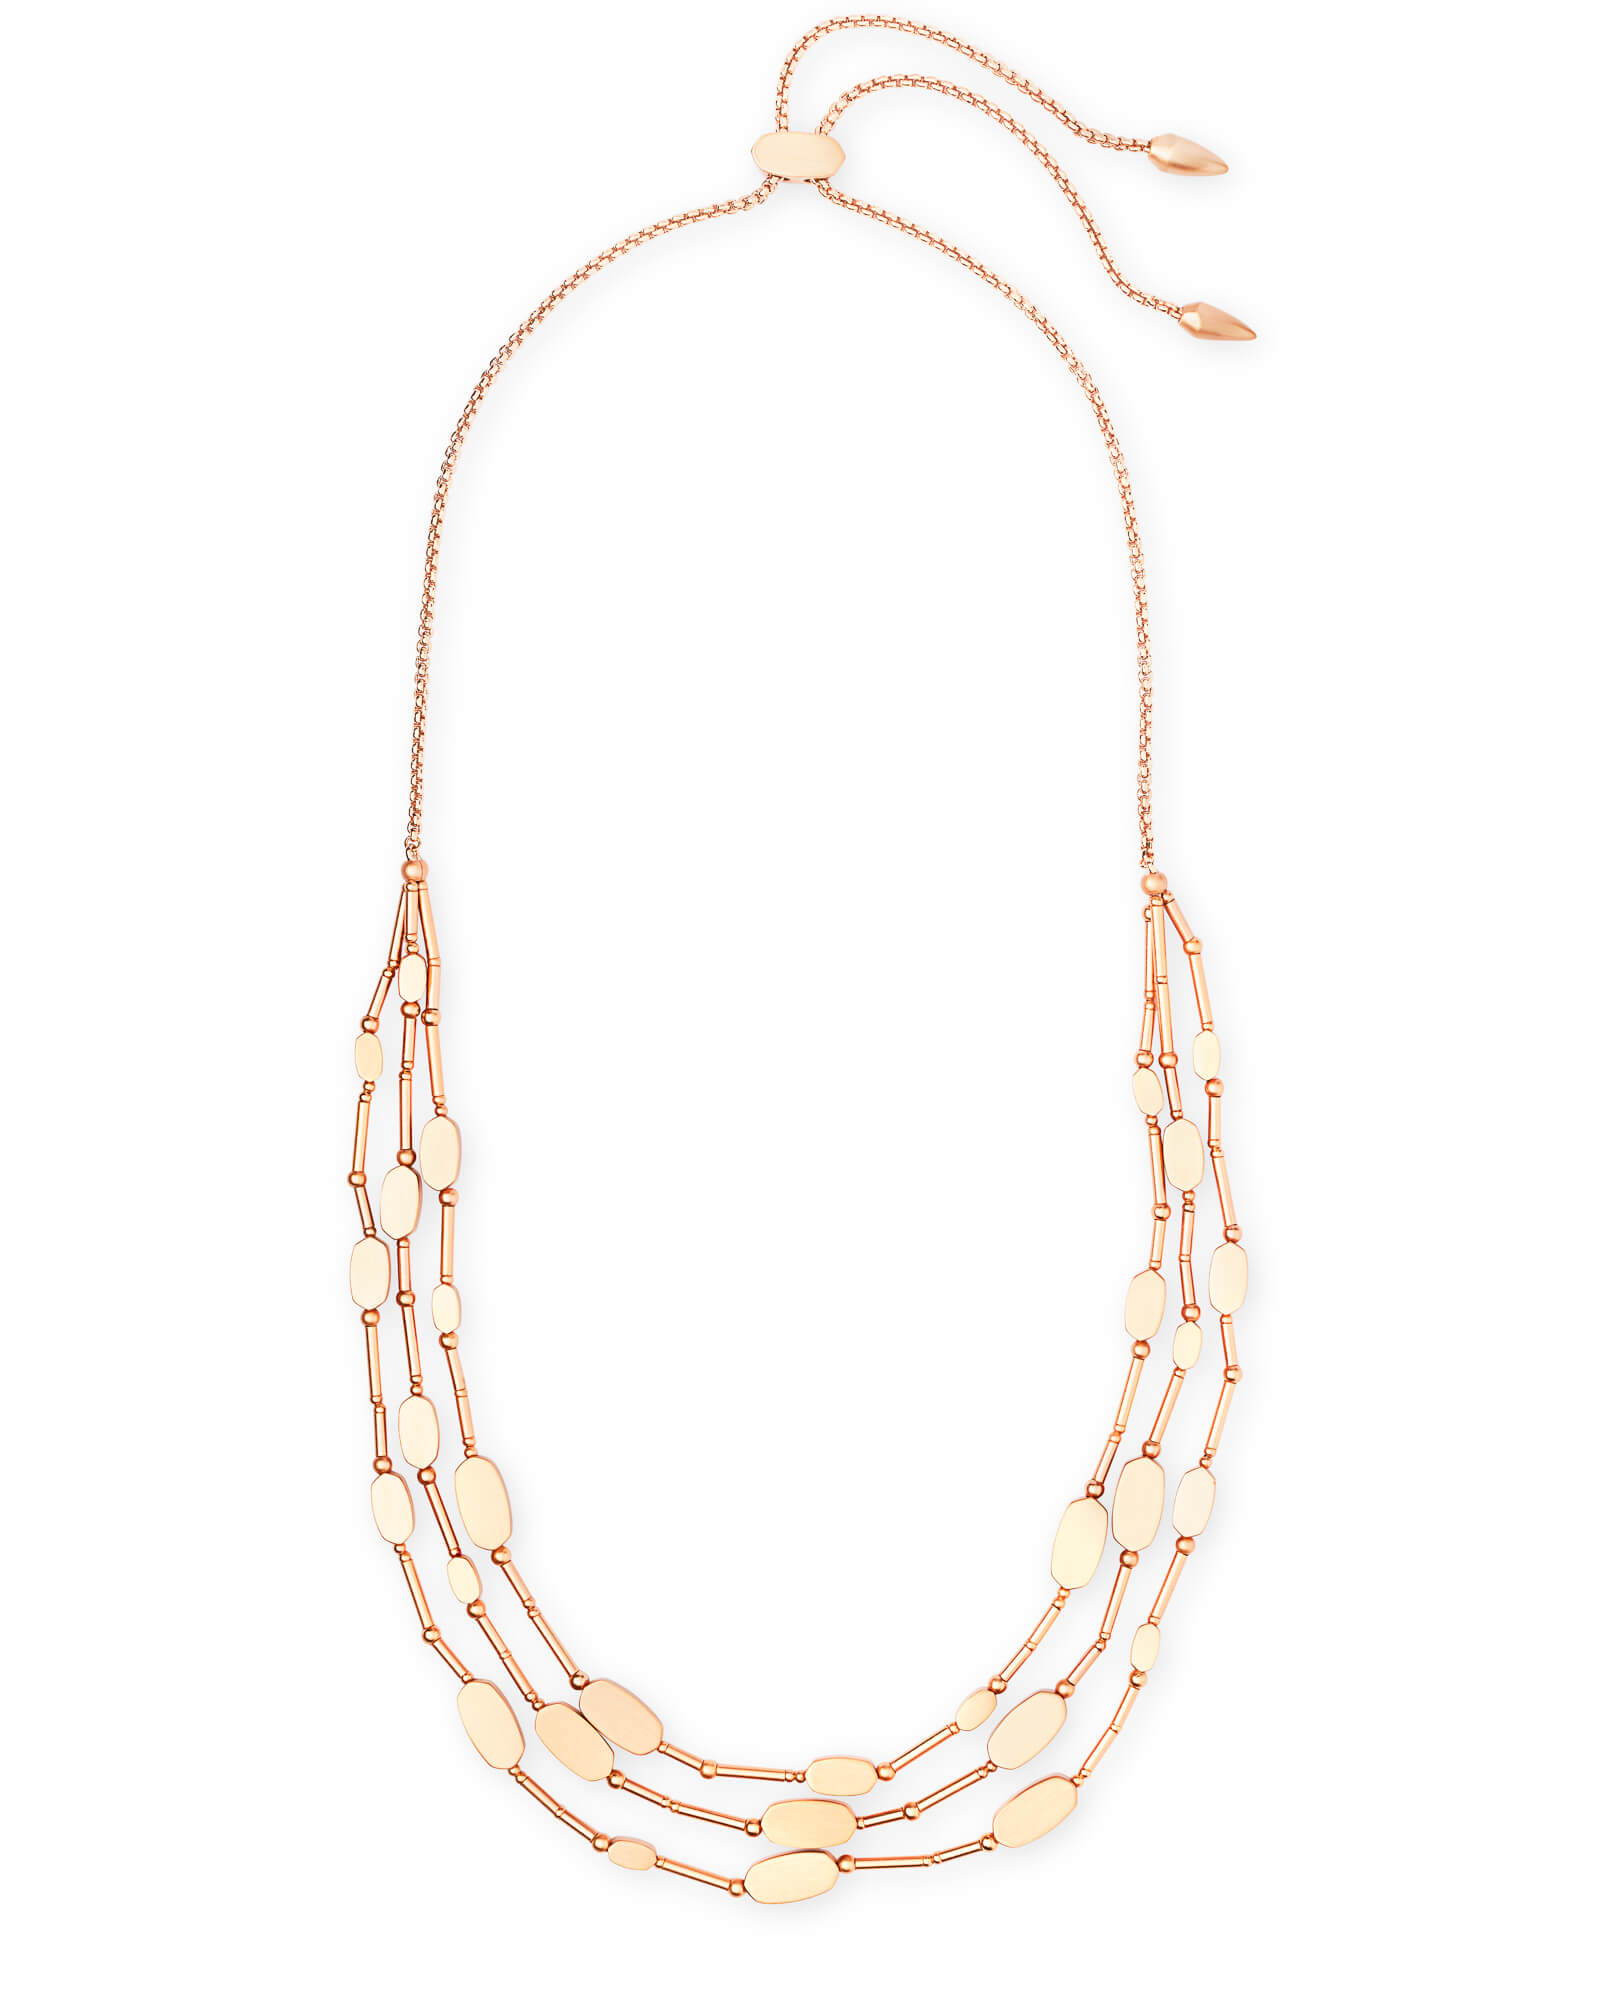 Channing Multi Strand Necklace in Rose Gold